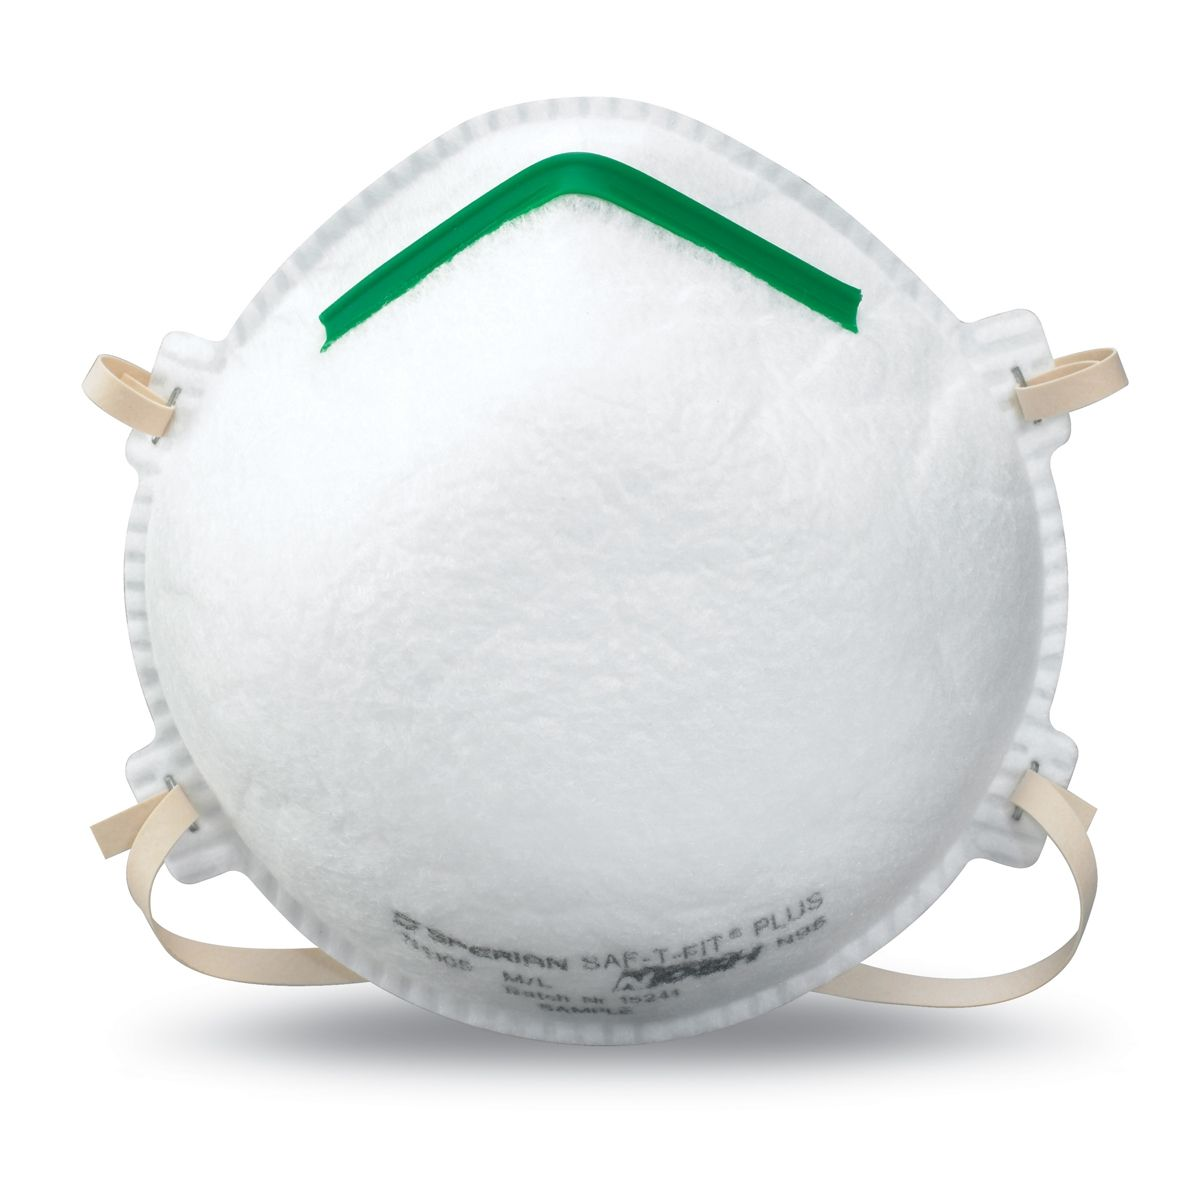 Honeywell SAF-T-FIT Plus Economical Disposable N95 Particulate Respirator - Molded Cup - These disposable respirators offer the most variety in protection size and comfort. NIOSH Approved N95 protection provides 95% particulate efficiency against oil-free particulates. | FullSource.com